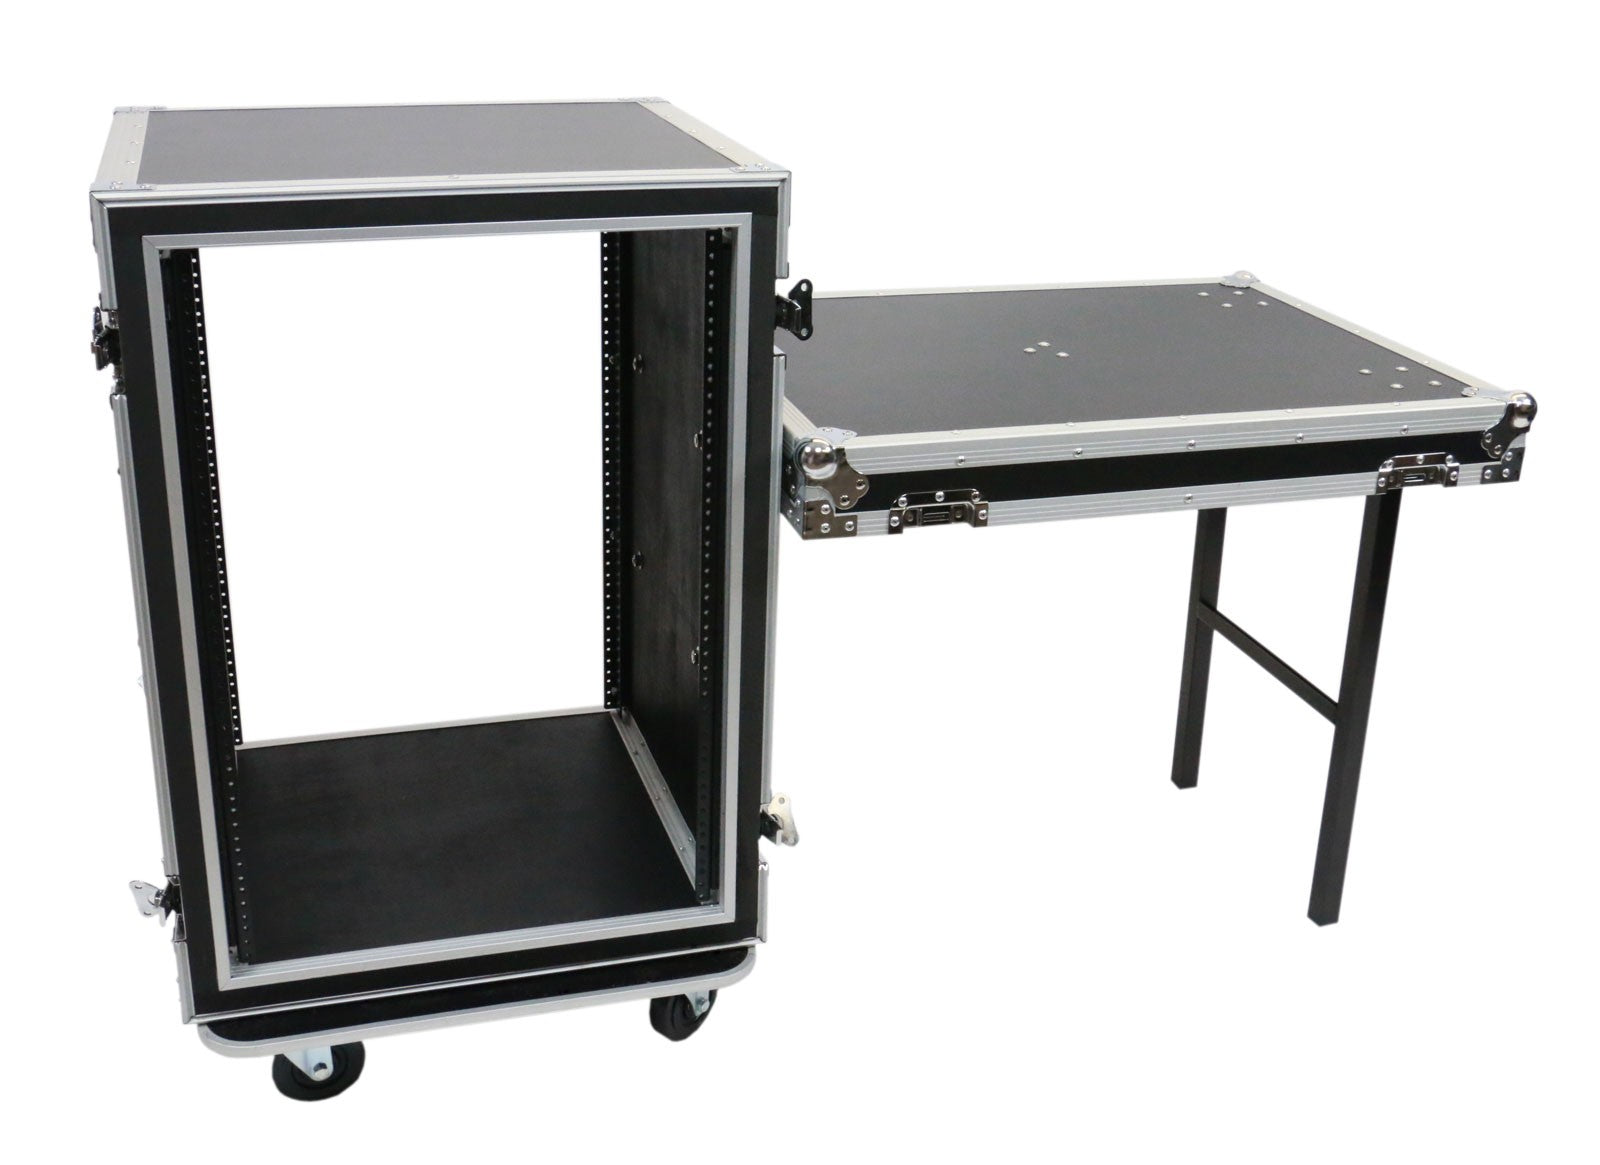 OSP SC16U-20SL 16 Space ATA Amp Rack w/Casters and Attached Utility Table